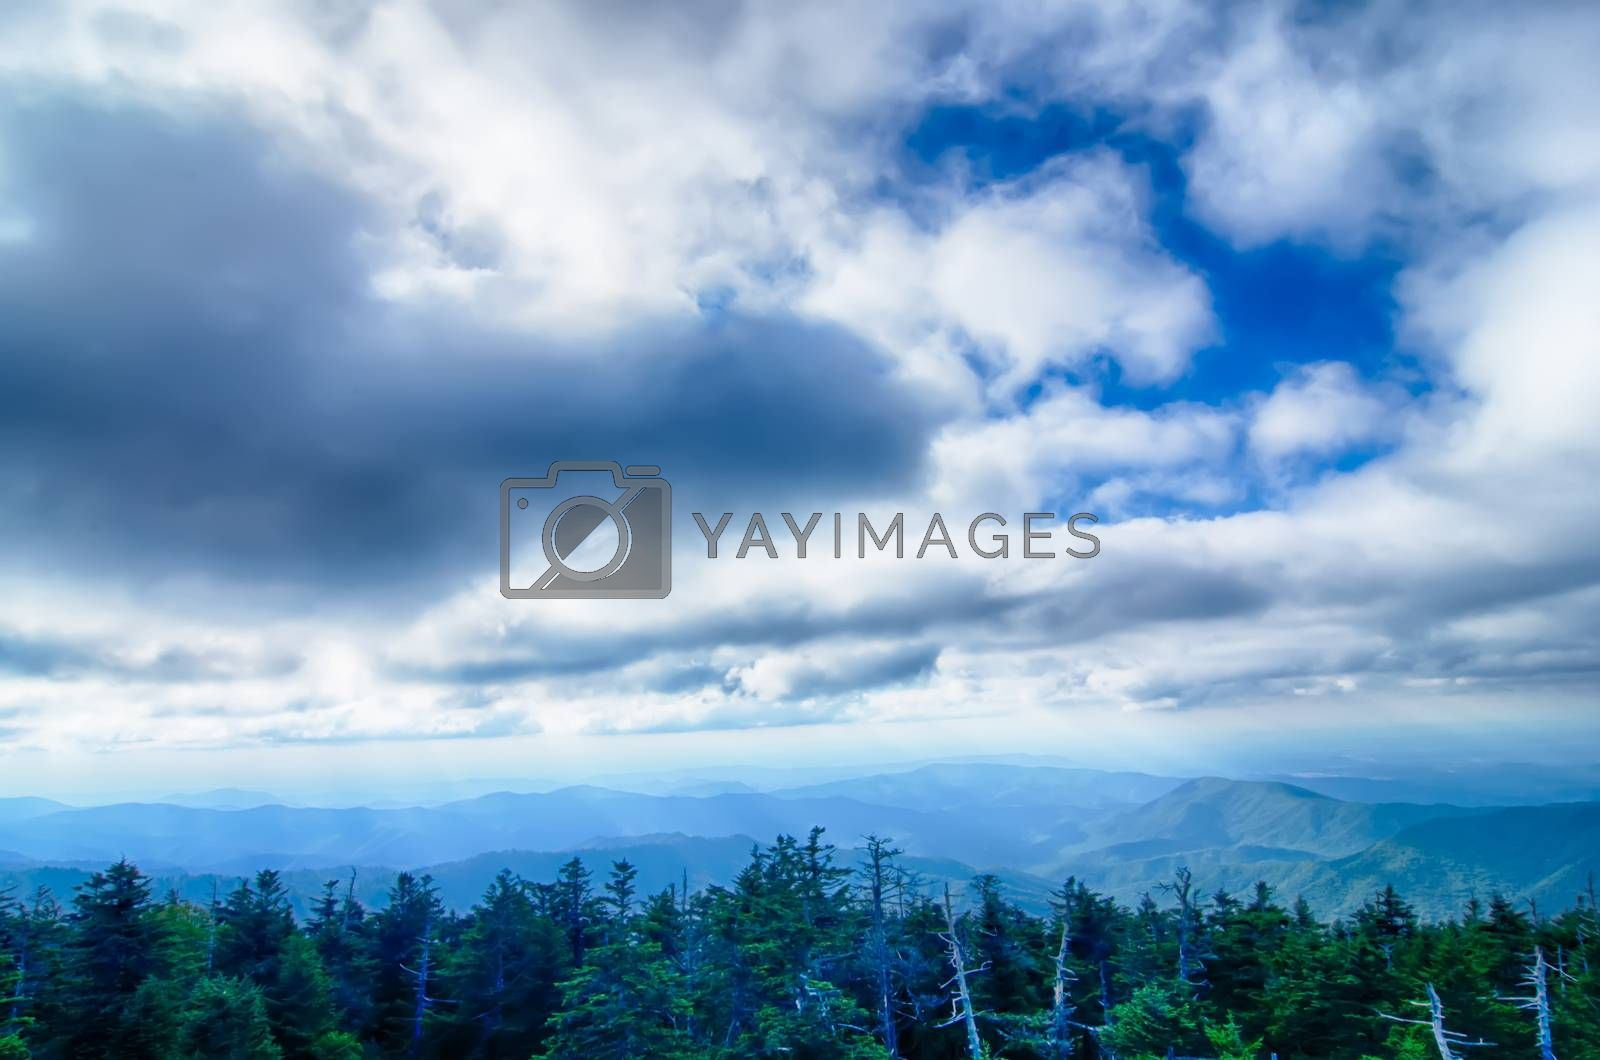 View from Clingman's Dome in the Great Smoky Mountains National Park near Gatlinburg, Tennessee.